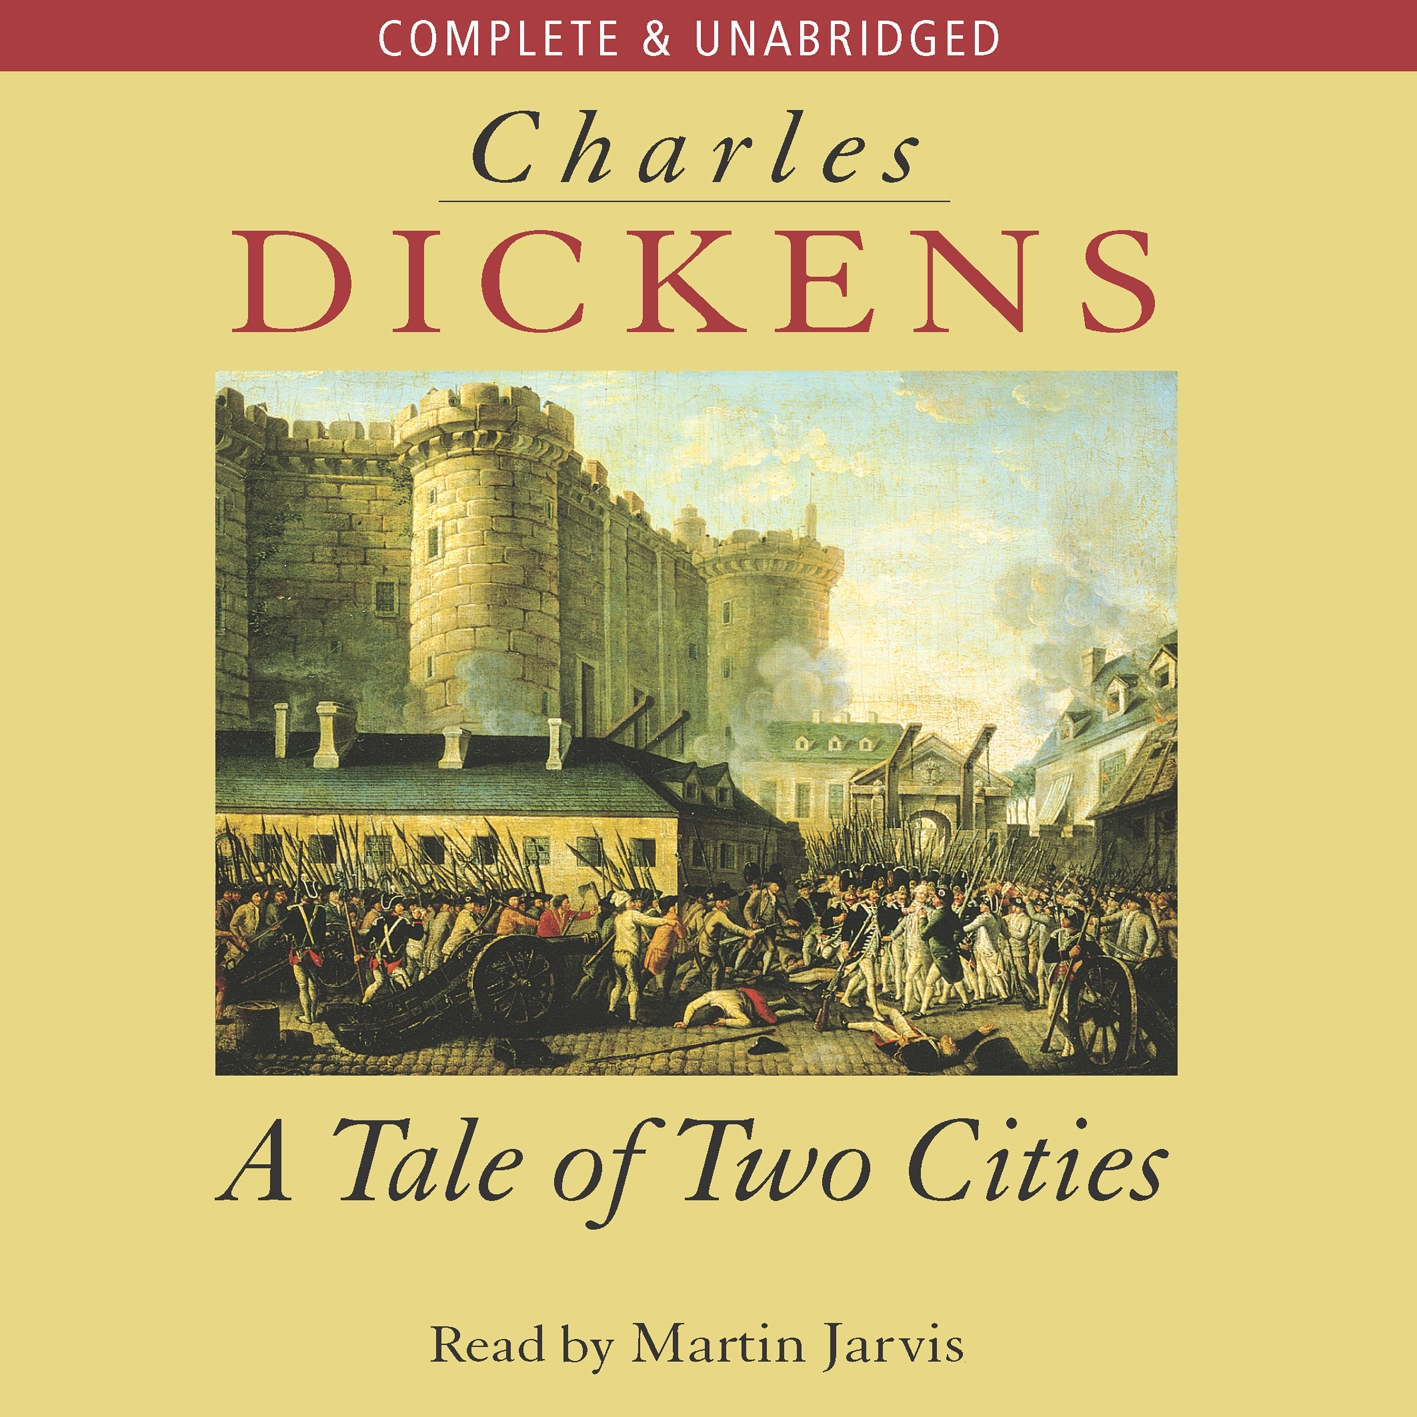 social injustice tale of two cities Using a device that is now fairly common in story telling, a tale of two cities charles dickens, the author of a tale of two cities was very concerned about issues of social inequities and injustice this story deals with justice, revenge and sacrifice hint.